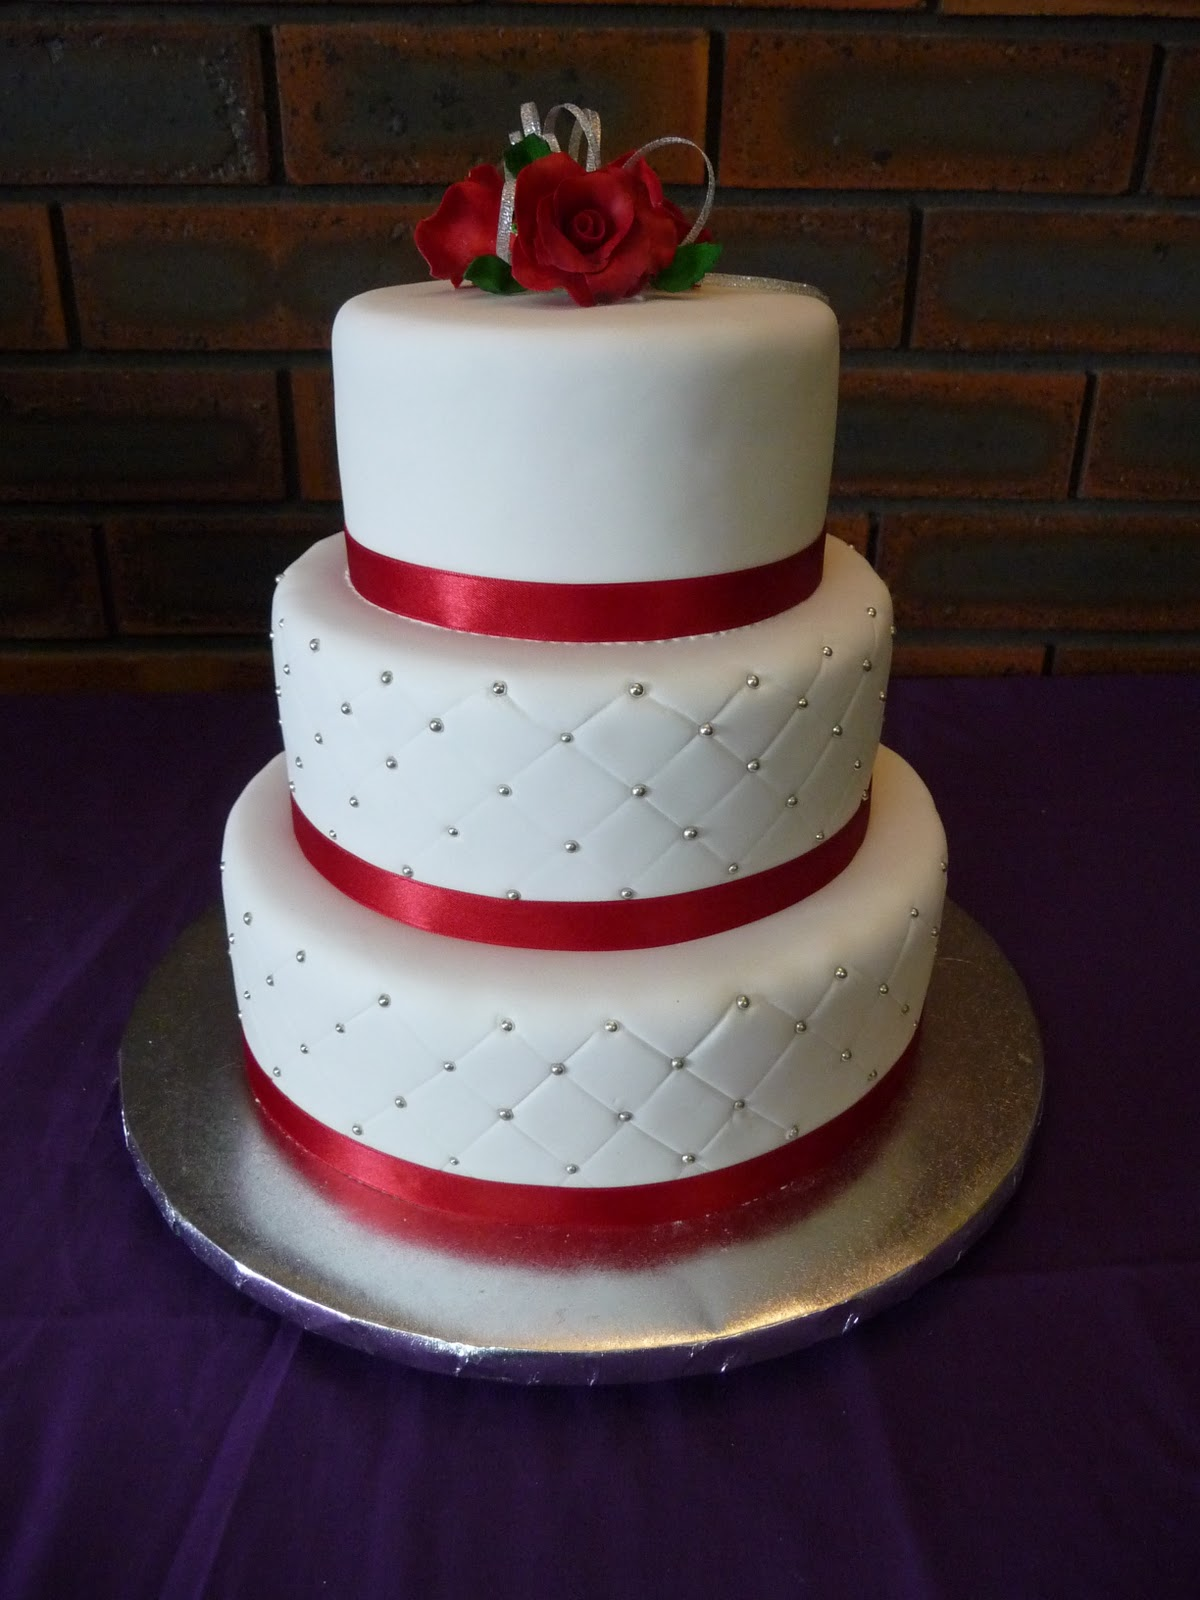 3 Tier Red Velvet Wedding Cake Tbrbfo